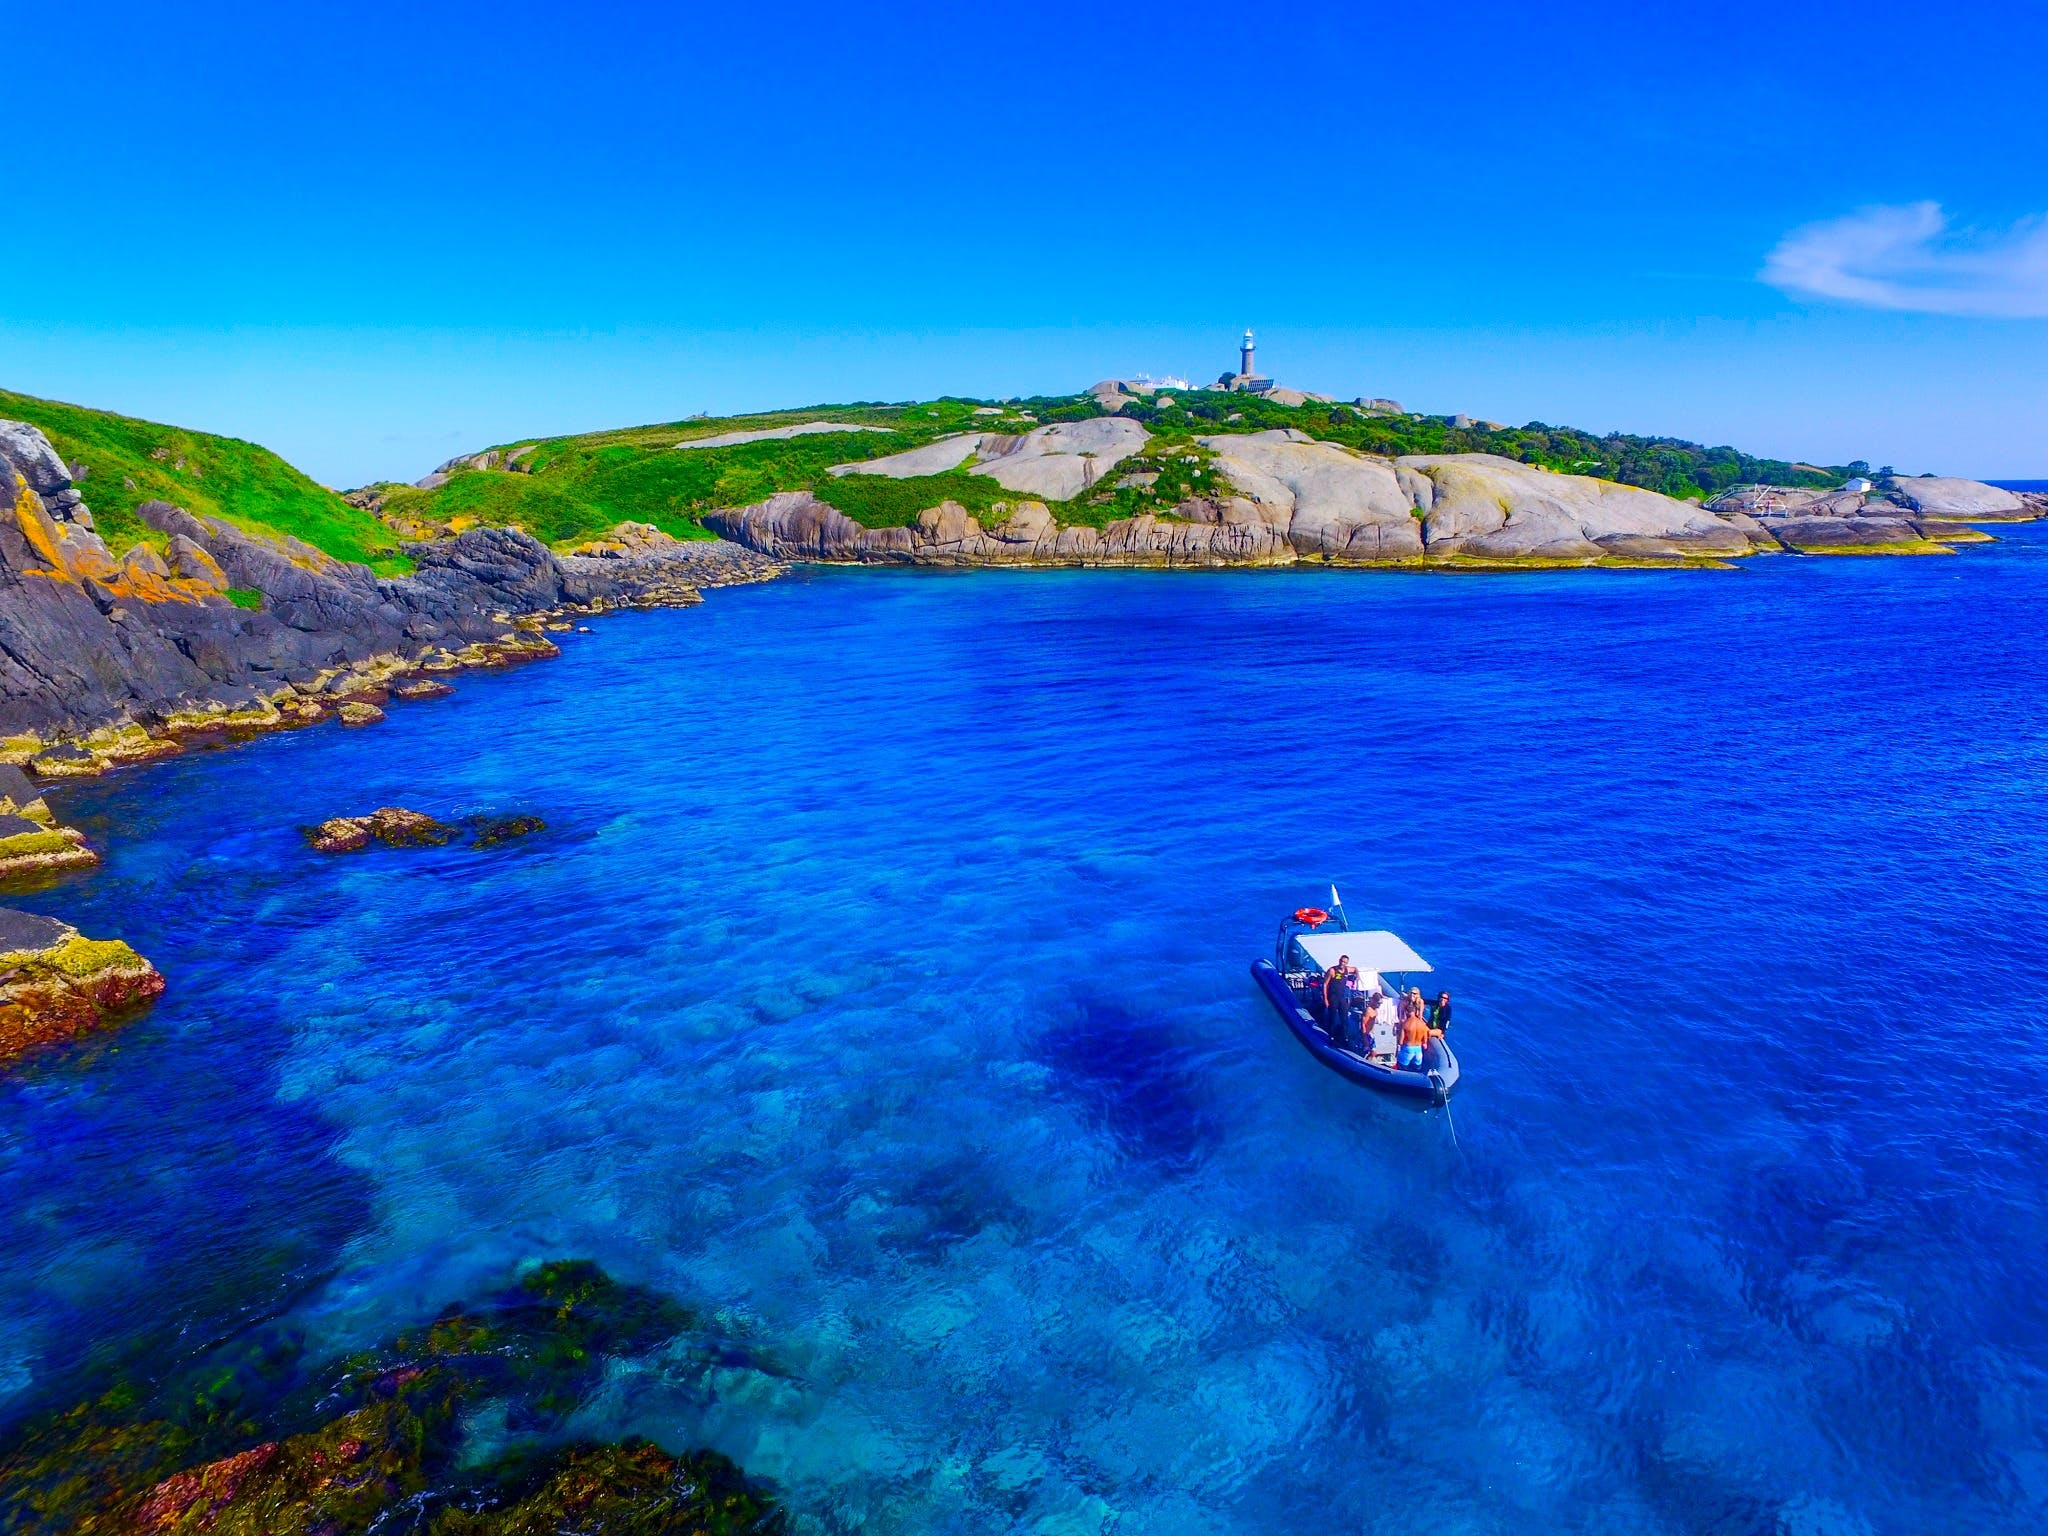 Snorkelling Montague Island - Attractions Brisbane